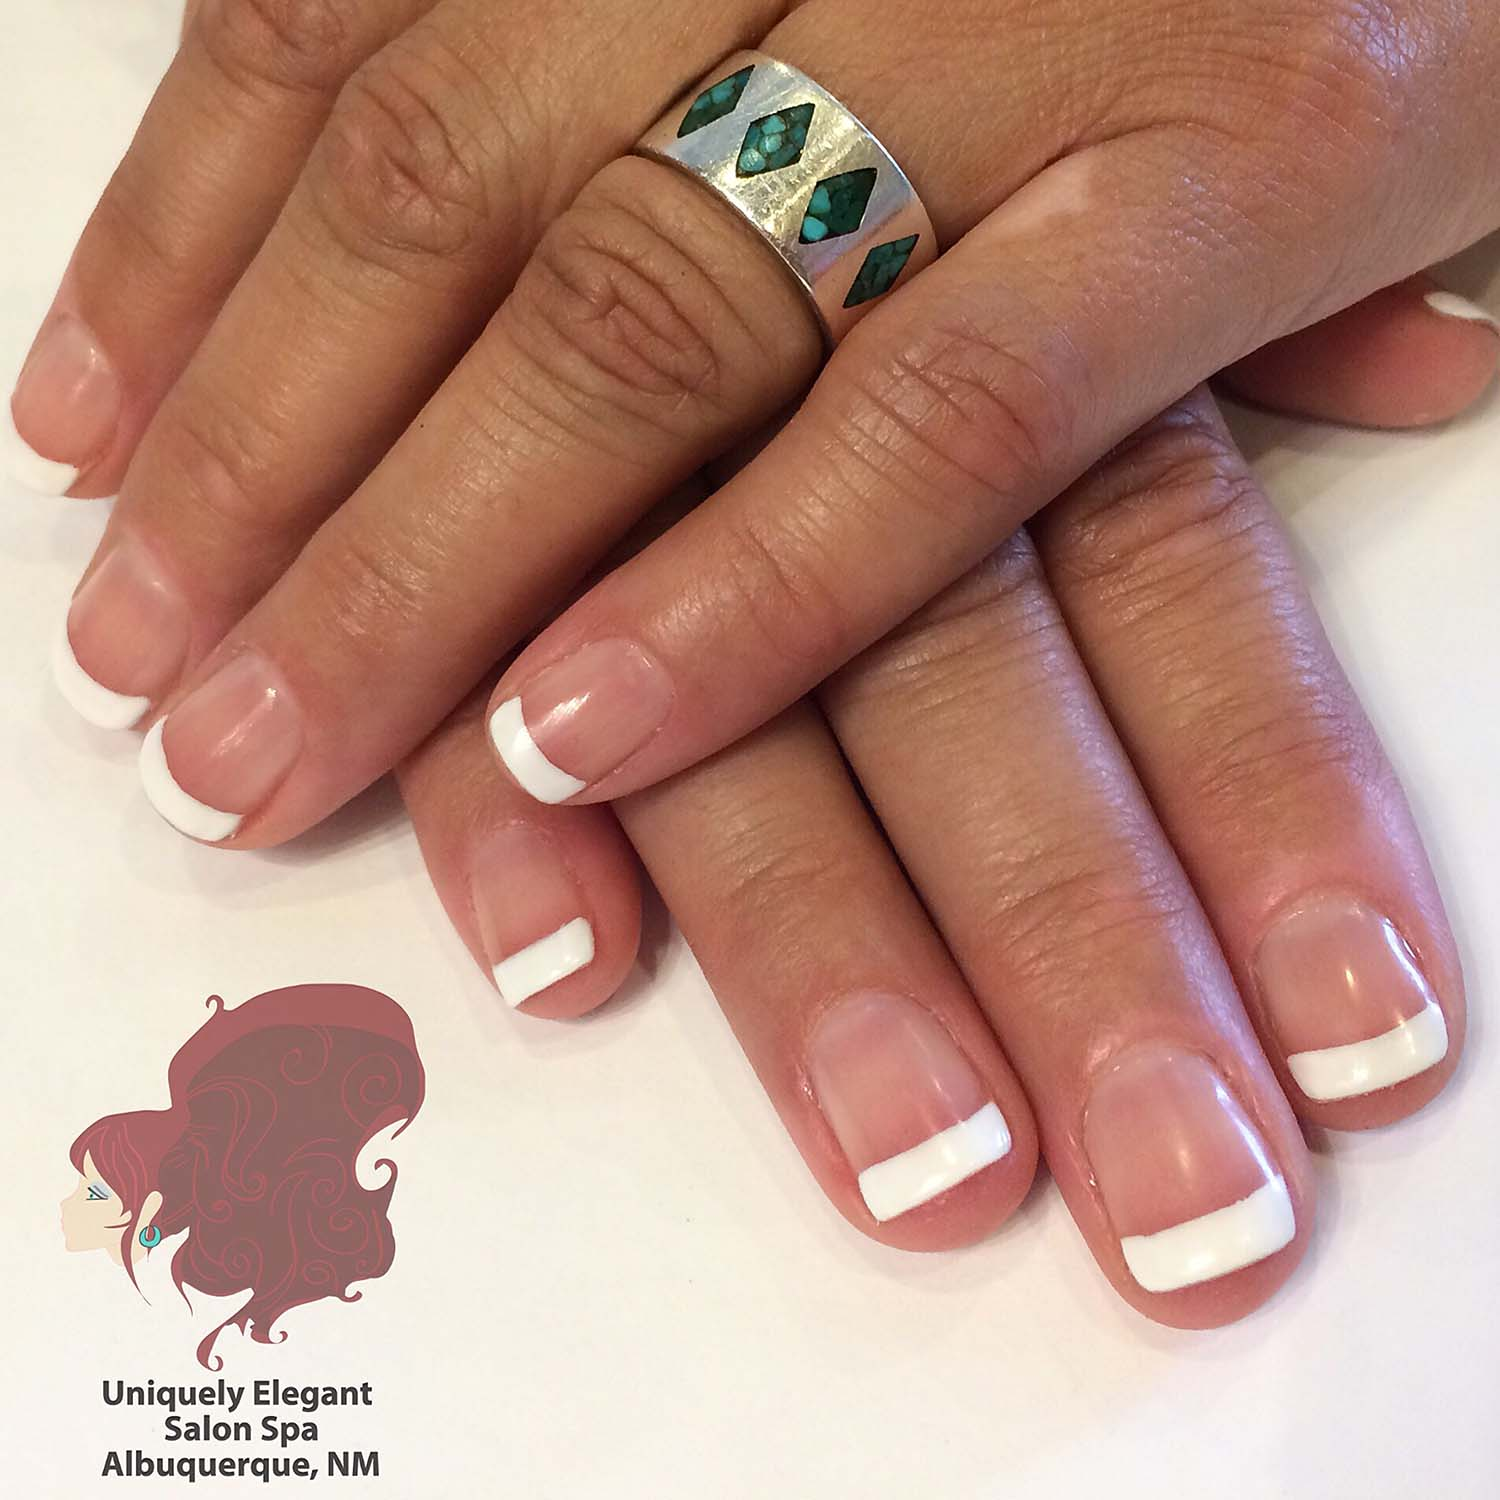 Nail Polish Tips: Many Images And Pics Of All Types Of Haircuts And